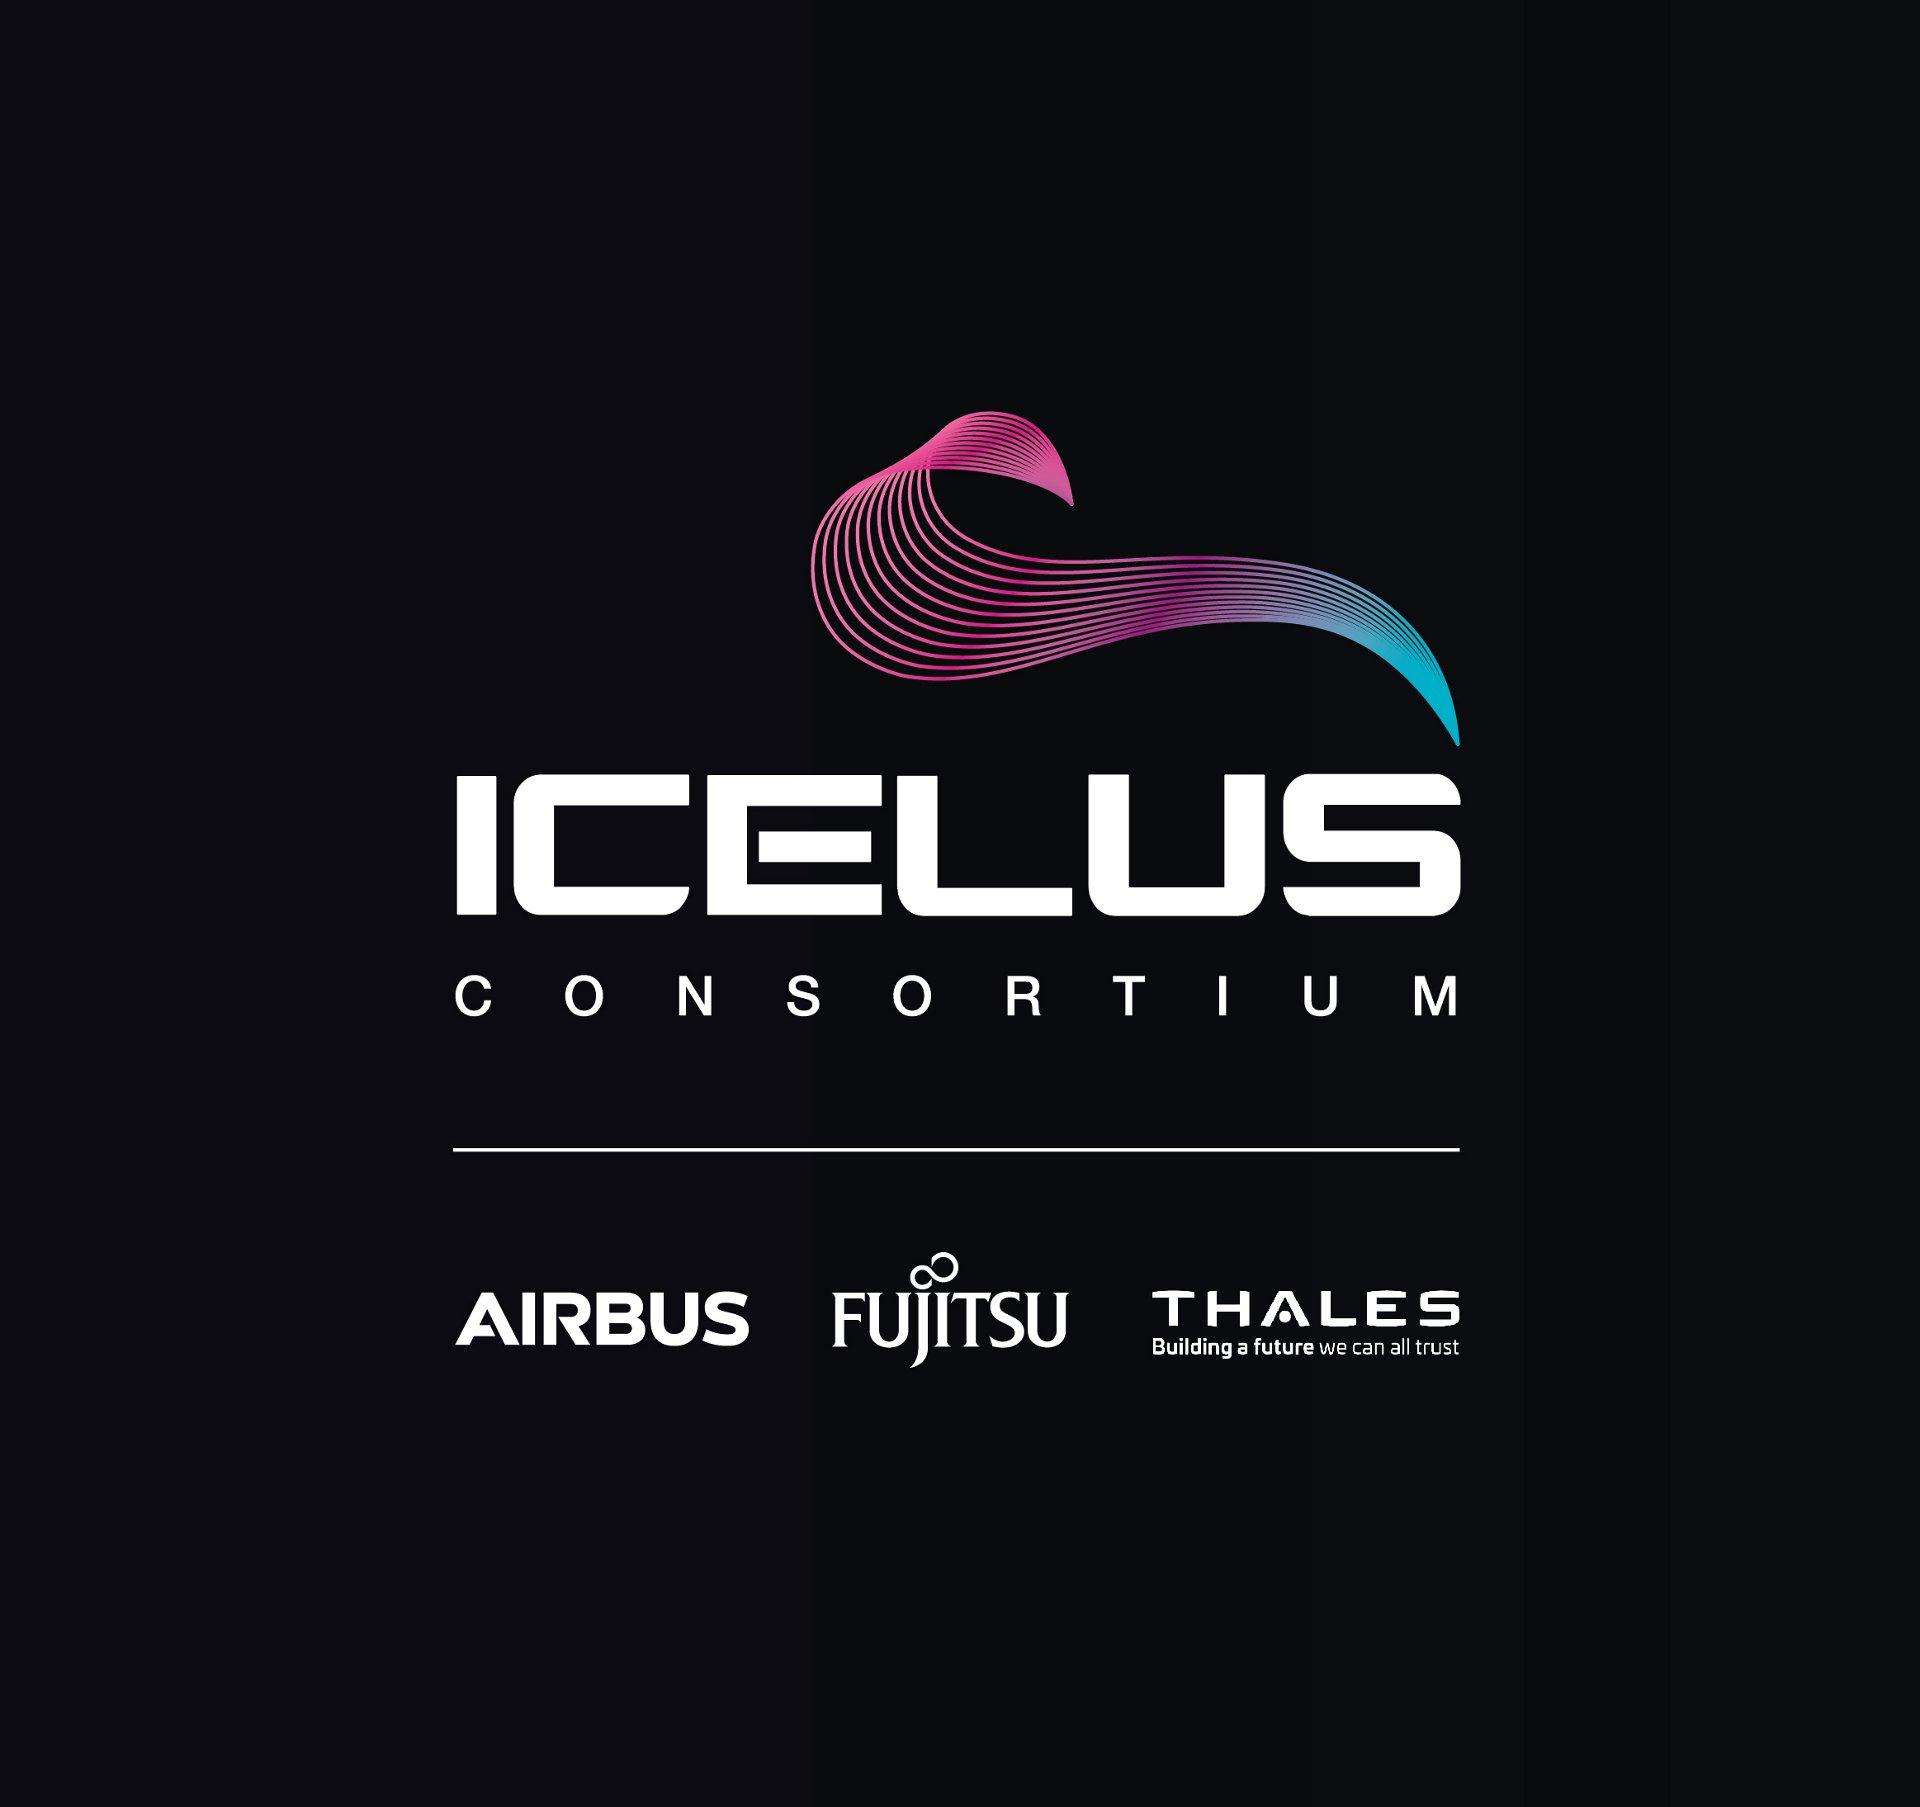 Airbus, Fujitsu and Thales UK have formed team ICELUS